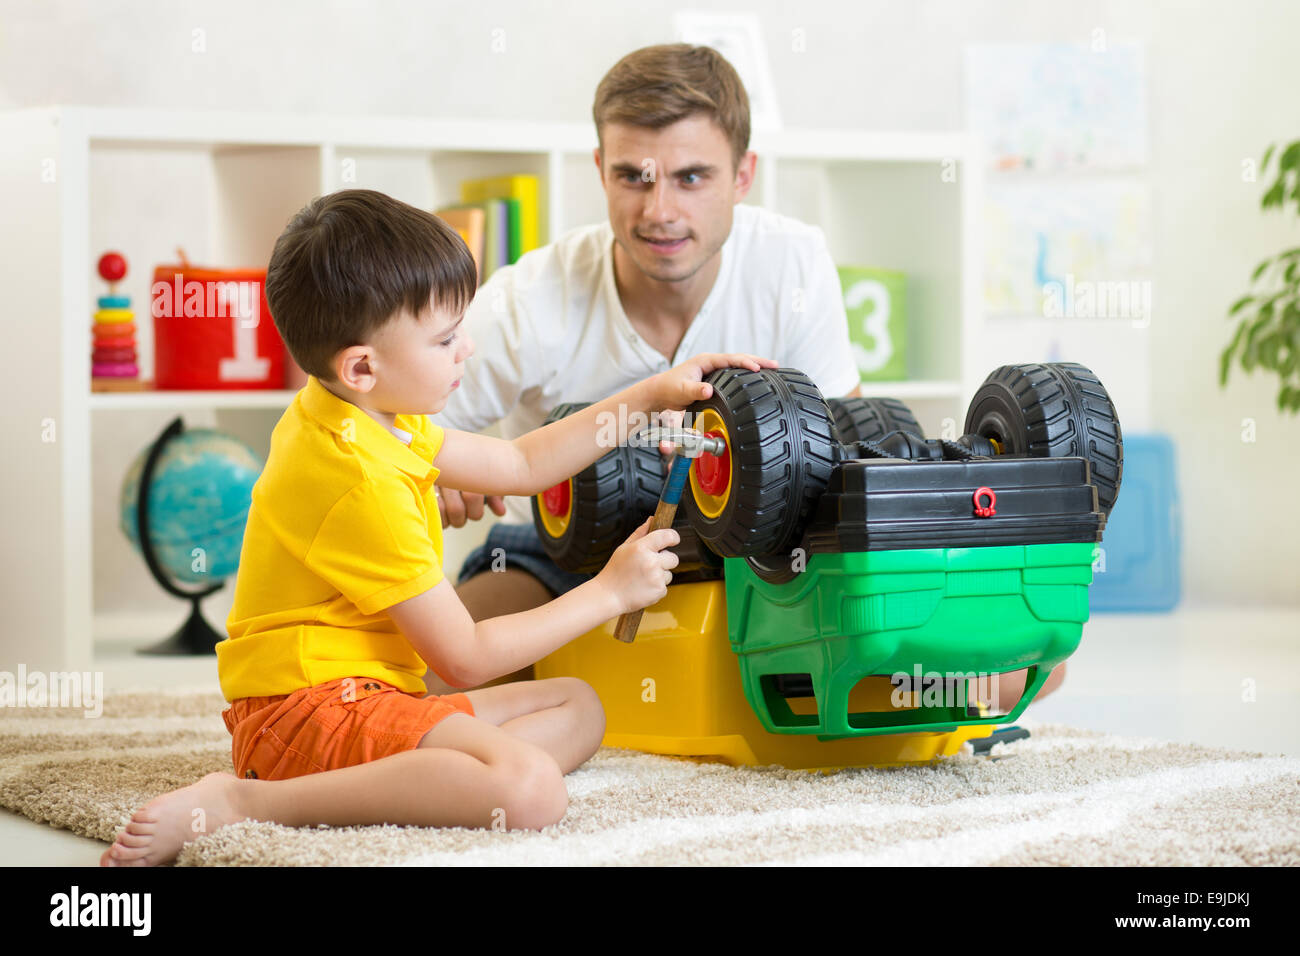 Boy Toys For Dads : Child boy and his father repair toy car stock photo